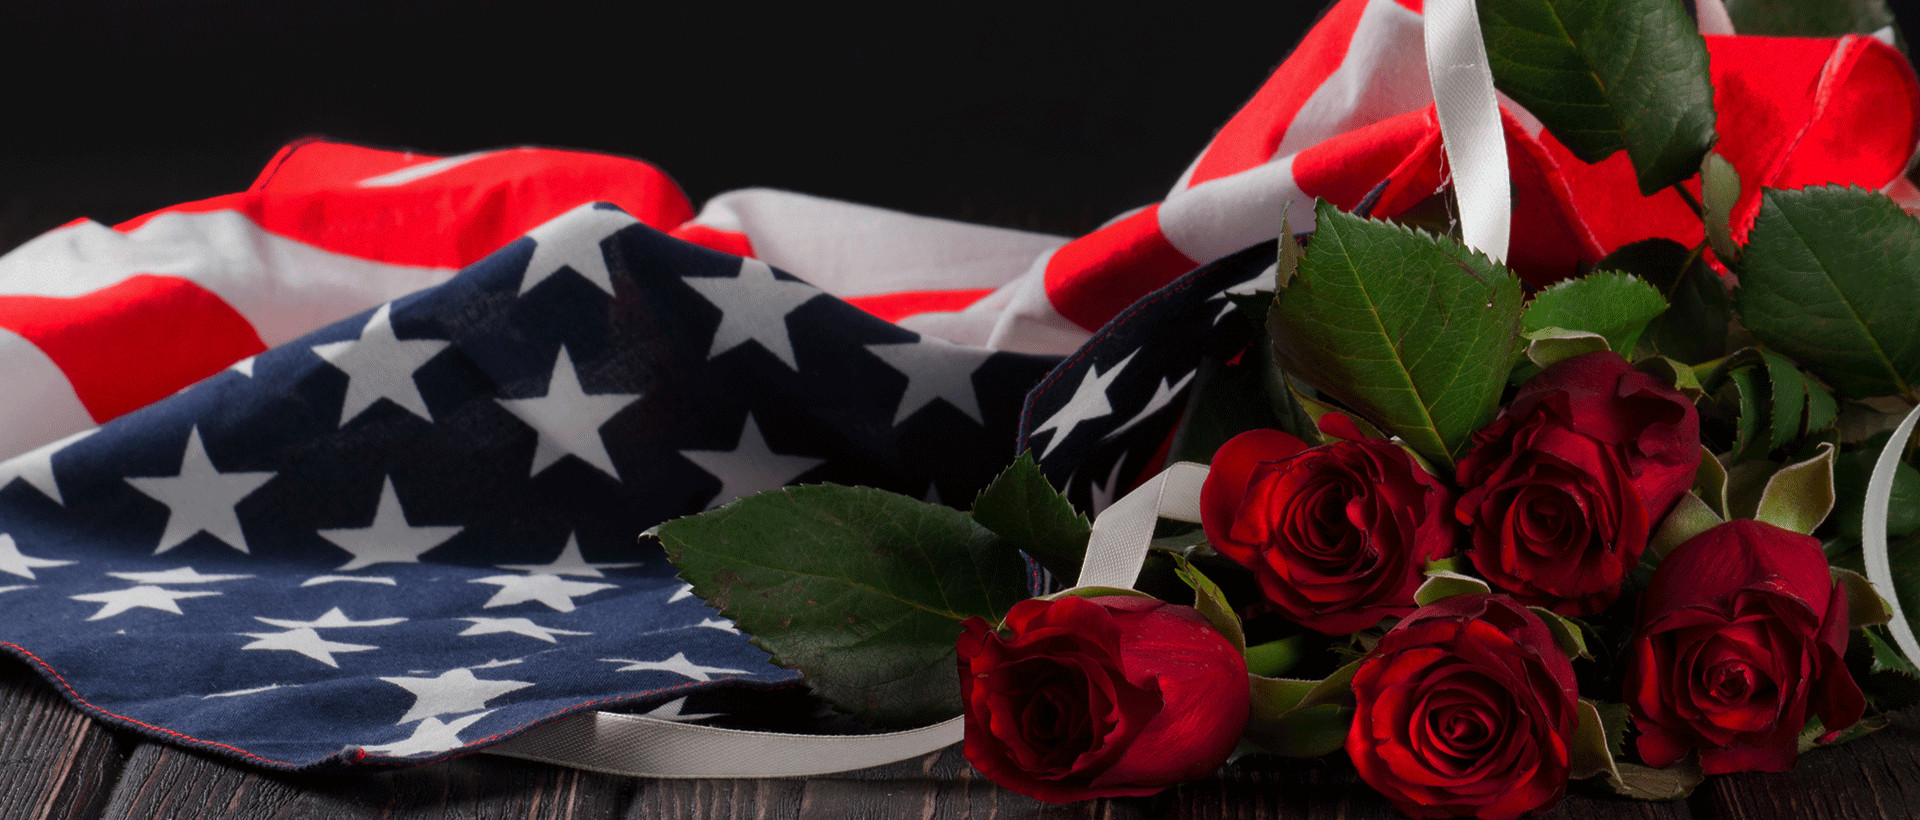 saluting veterans - Rose Garden Funeral Home